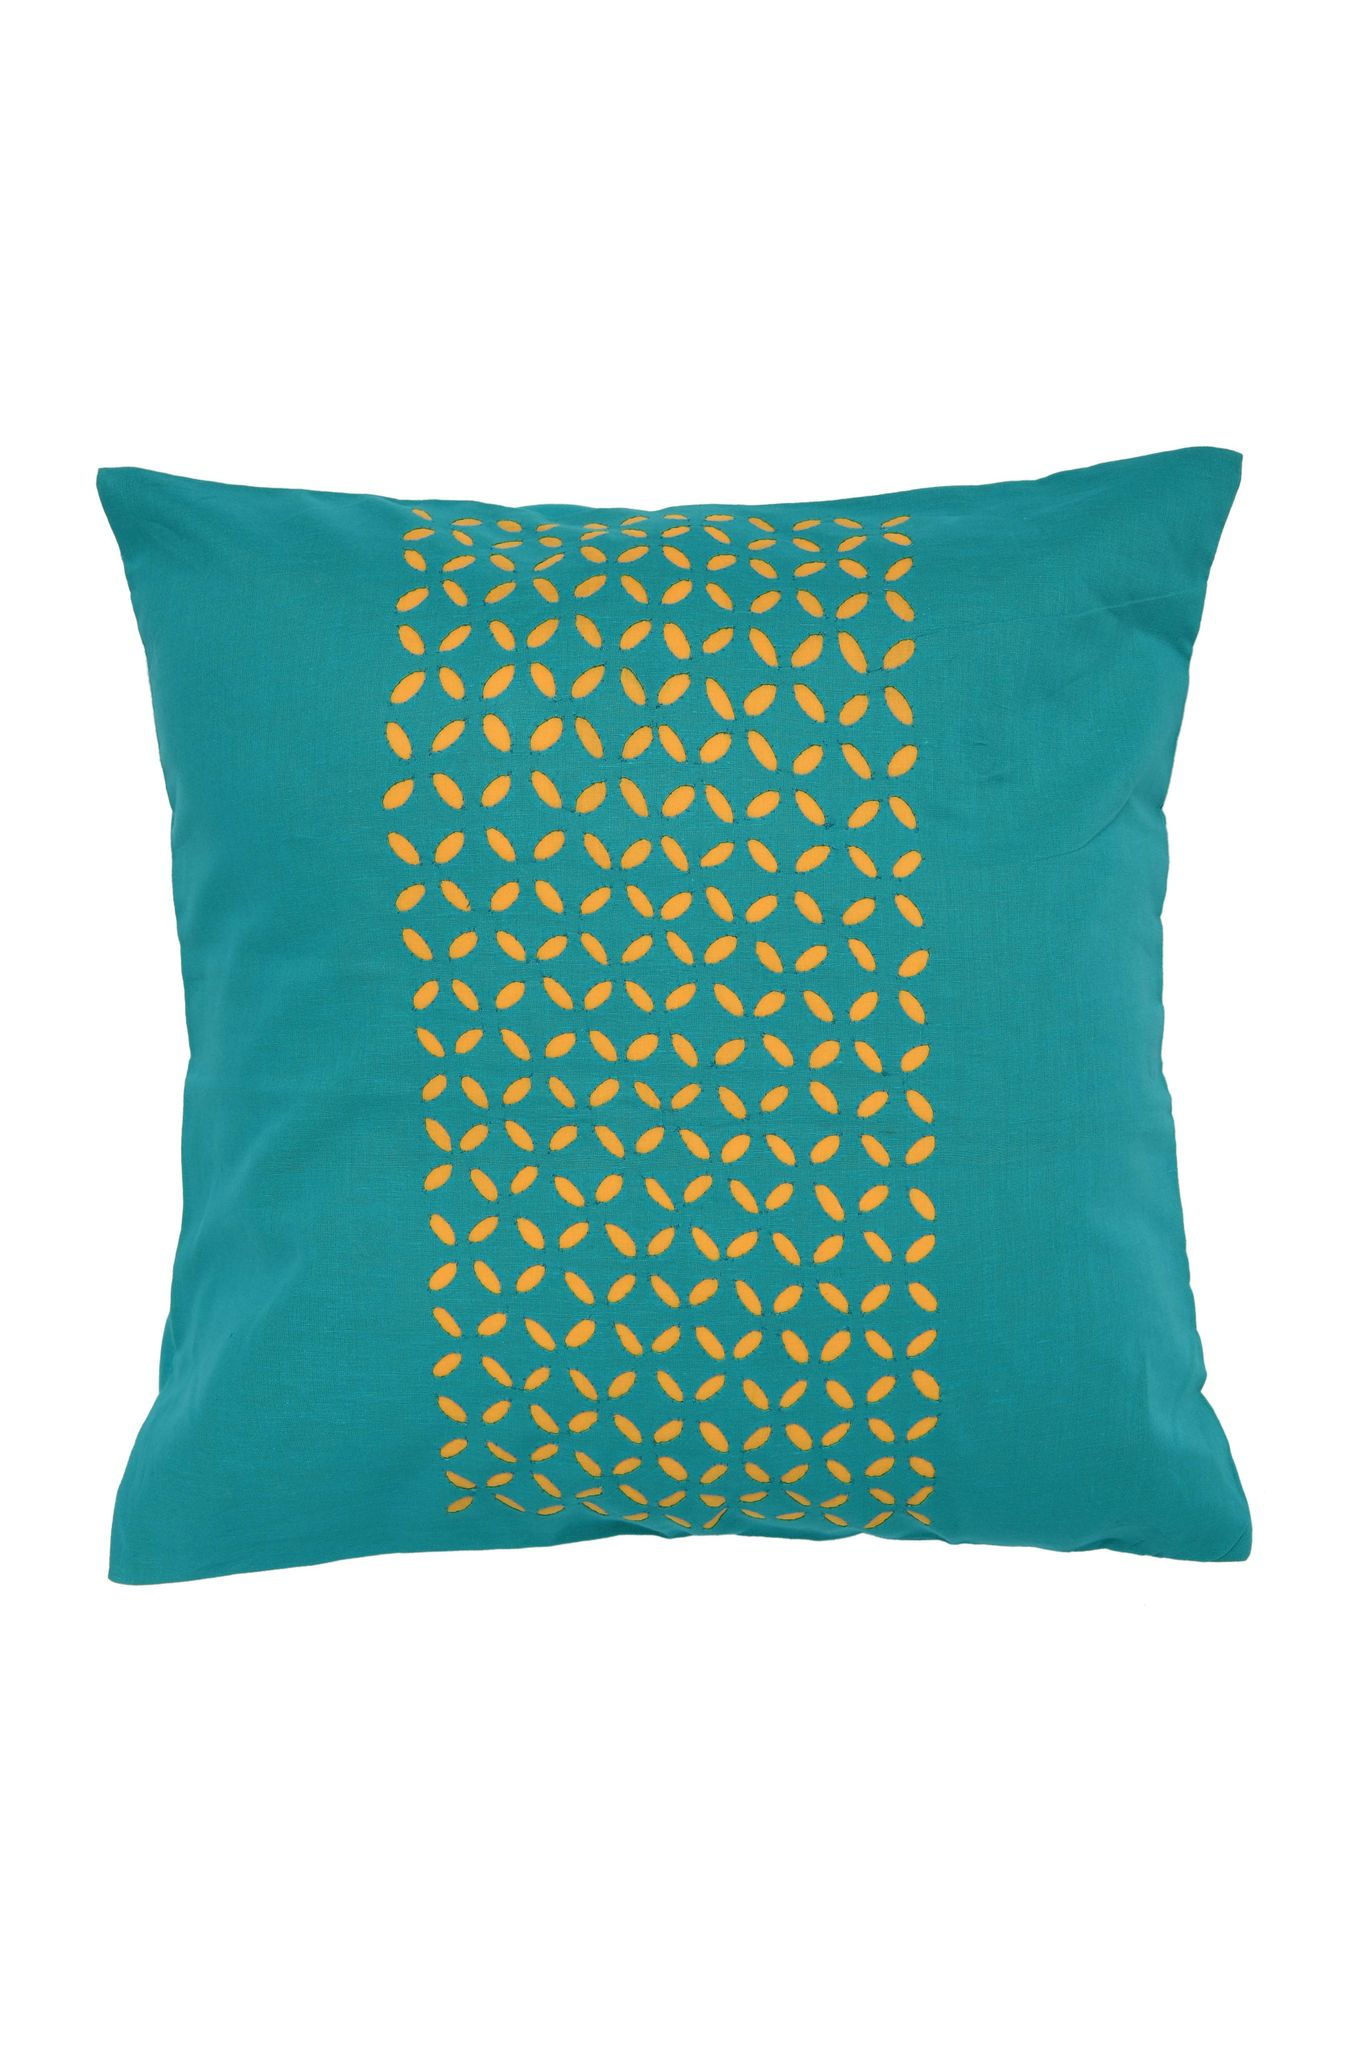 Hand Applique Turquoise Cushion Cover